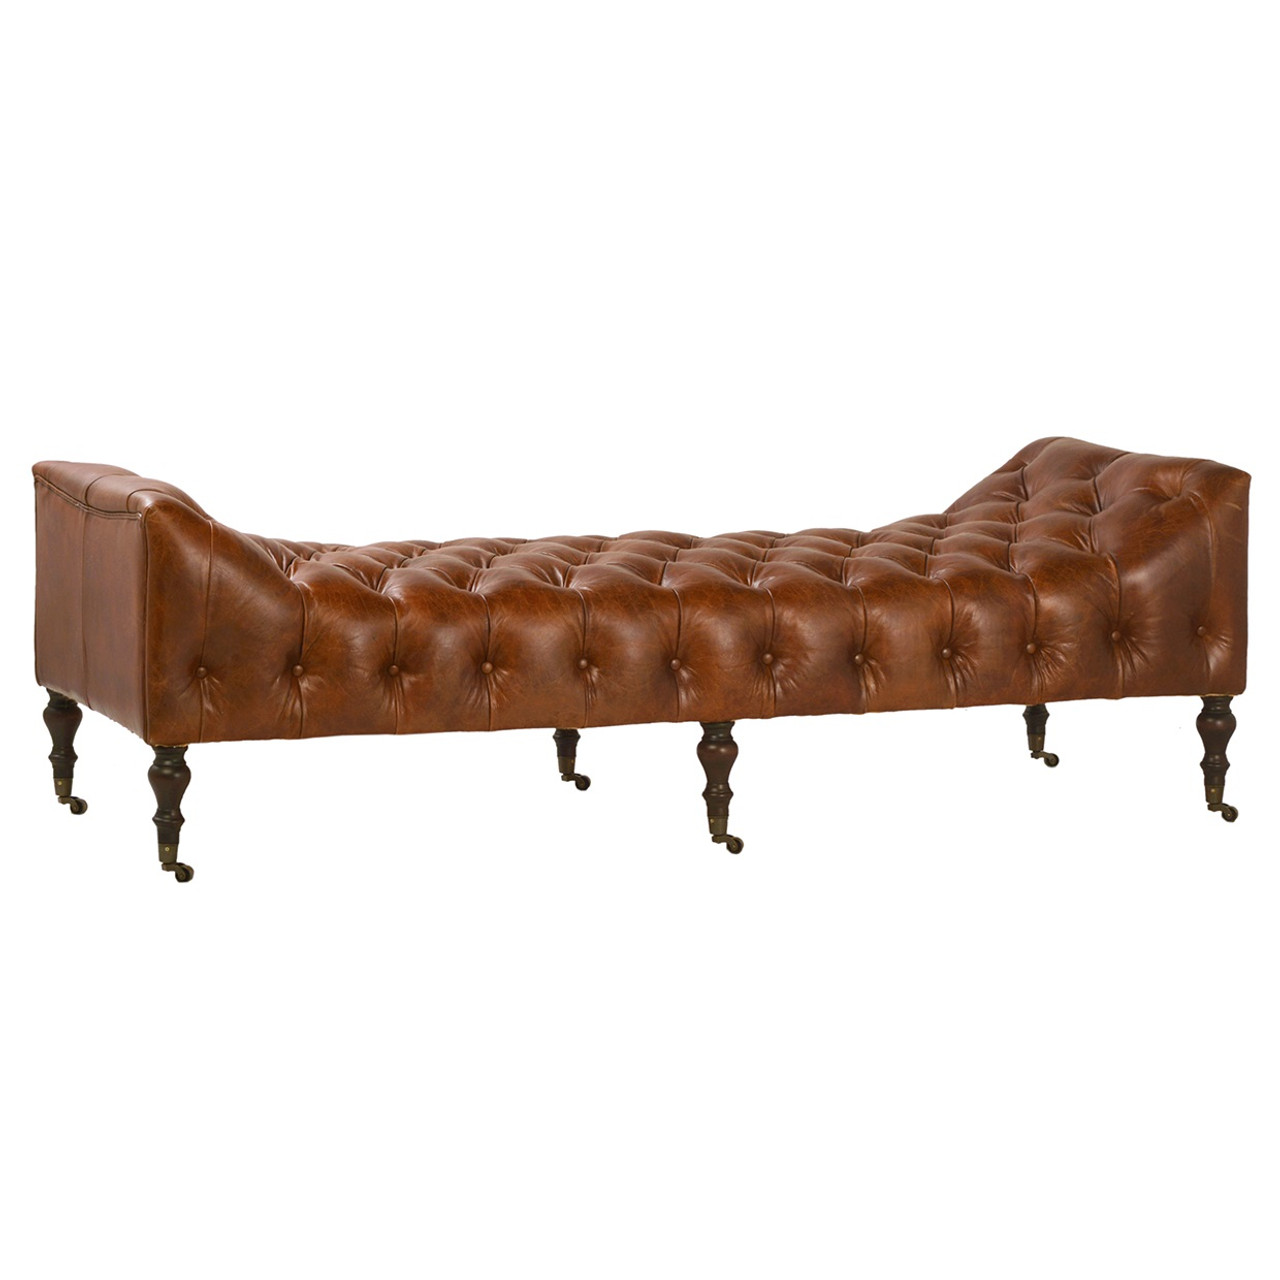 Remington Tufted Leather Curved Bench Daybed Zin Home